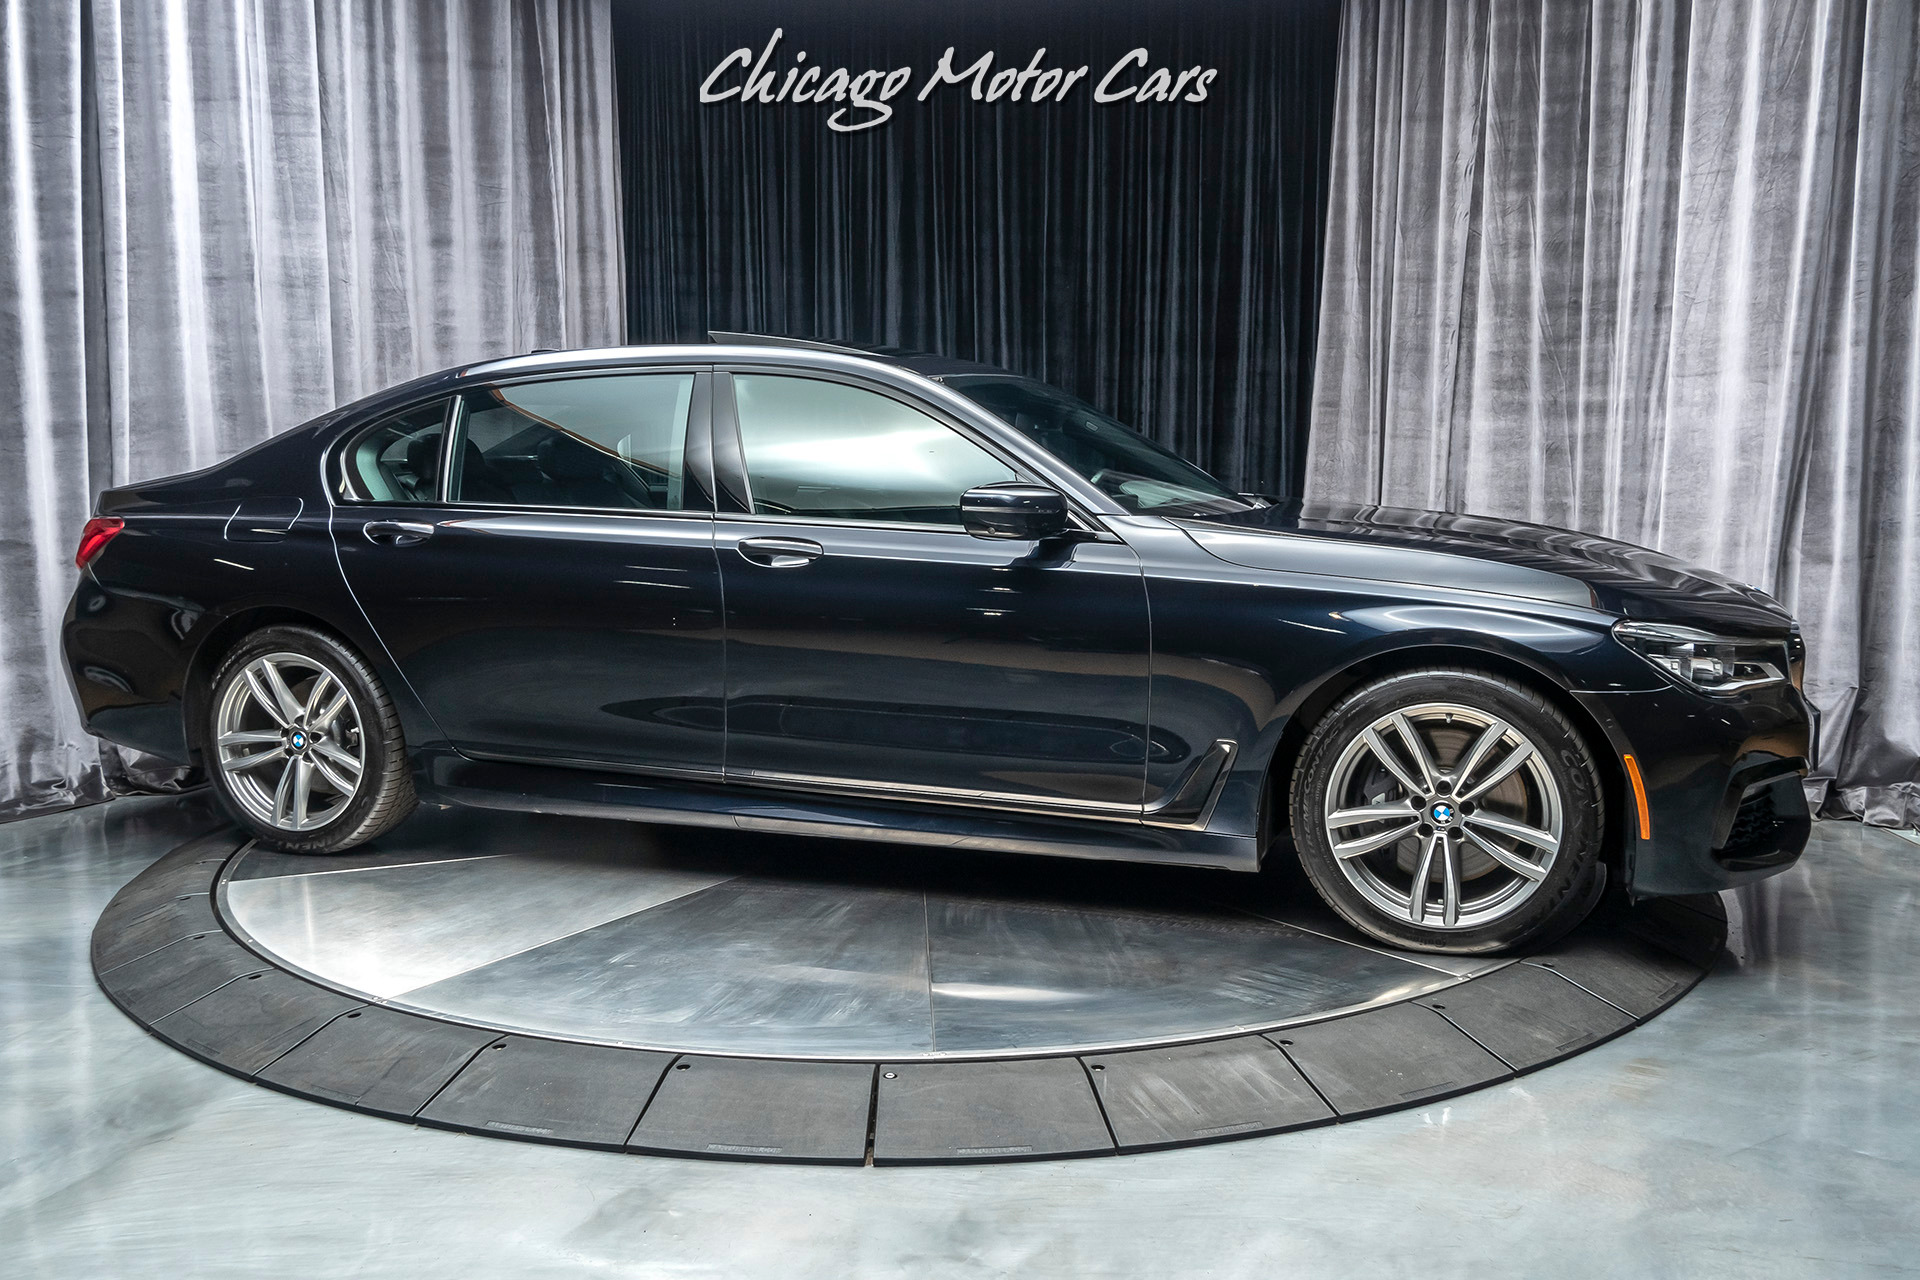 Used-2016-BMW-750i-xDrive-MSRP-122K-ONLY-18K-MILES